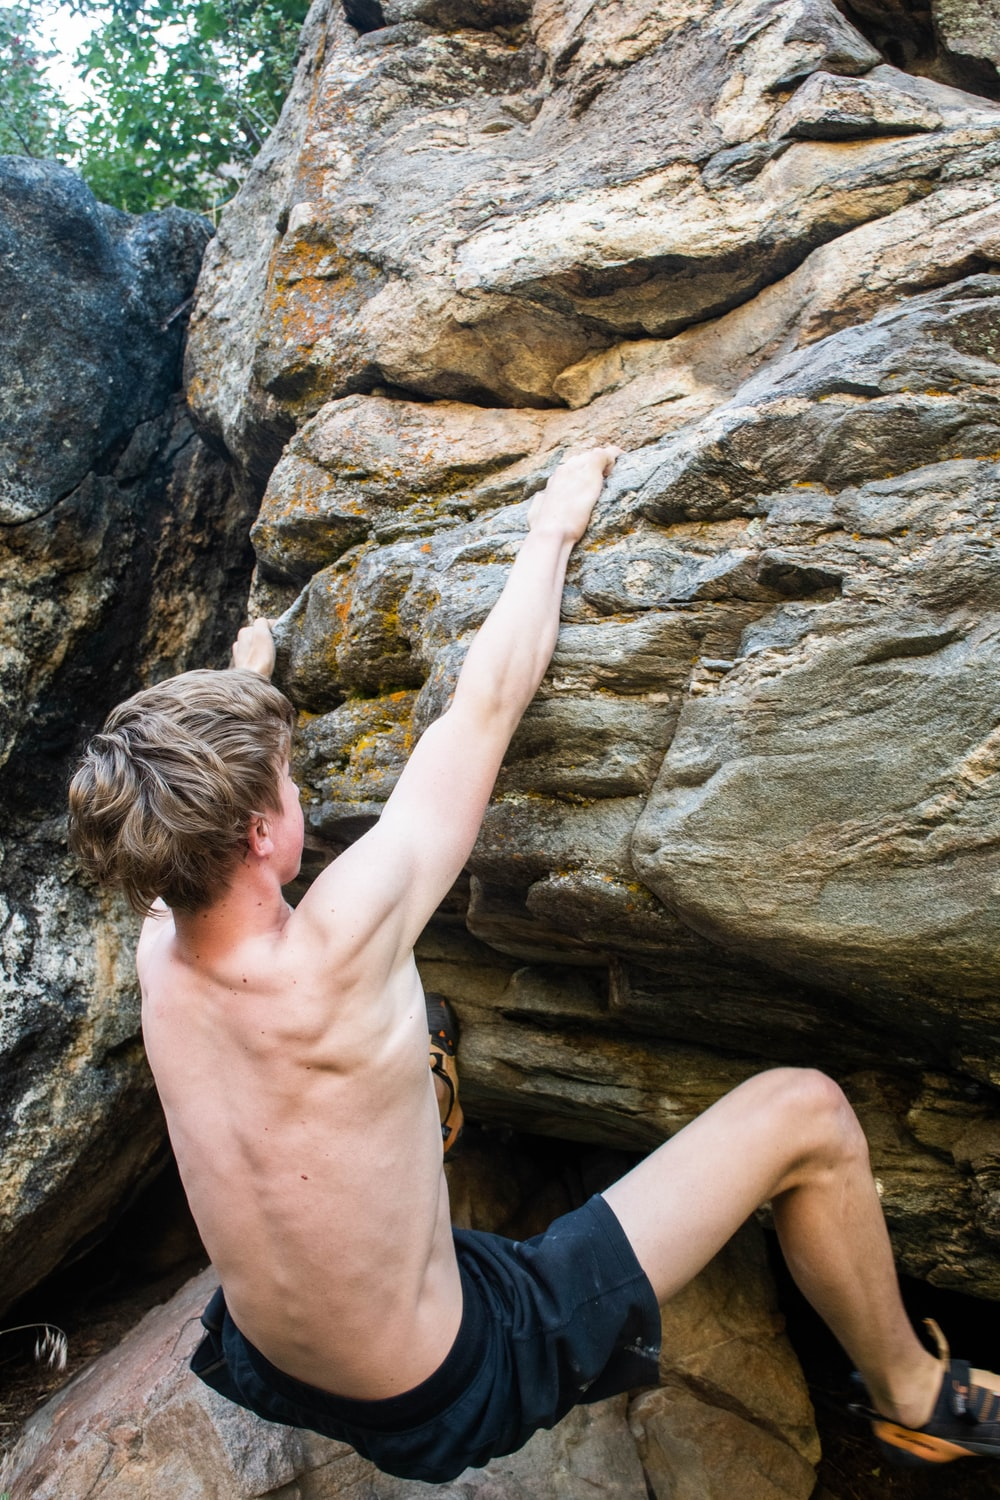 topless boy climbing on brown rock formation during daytime